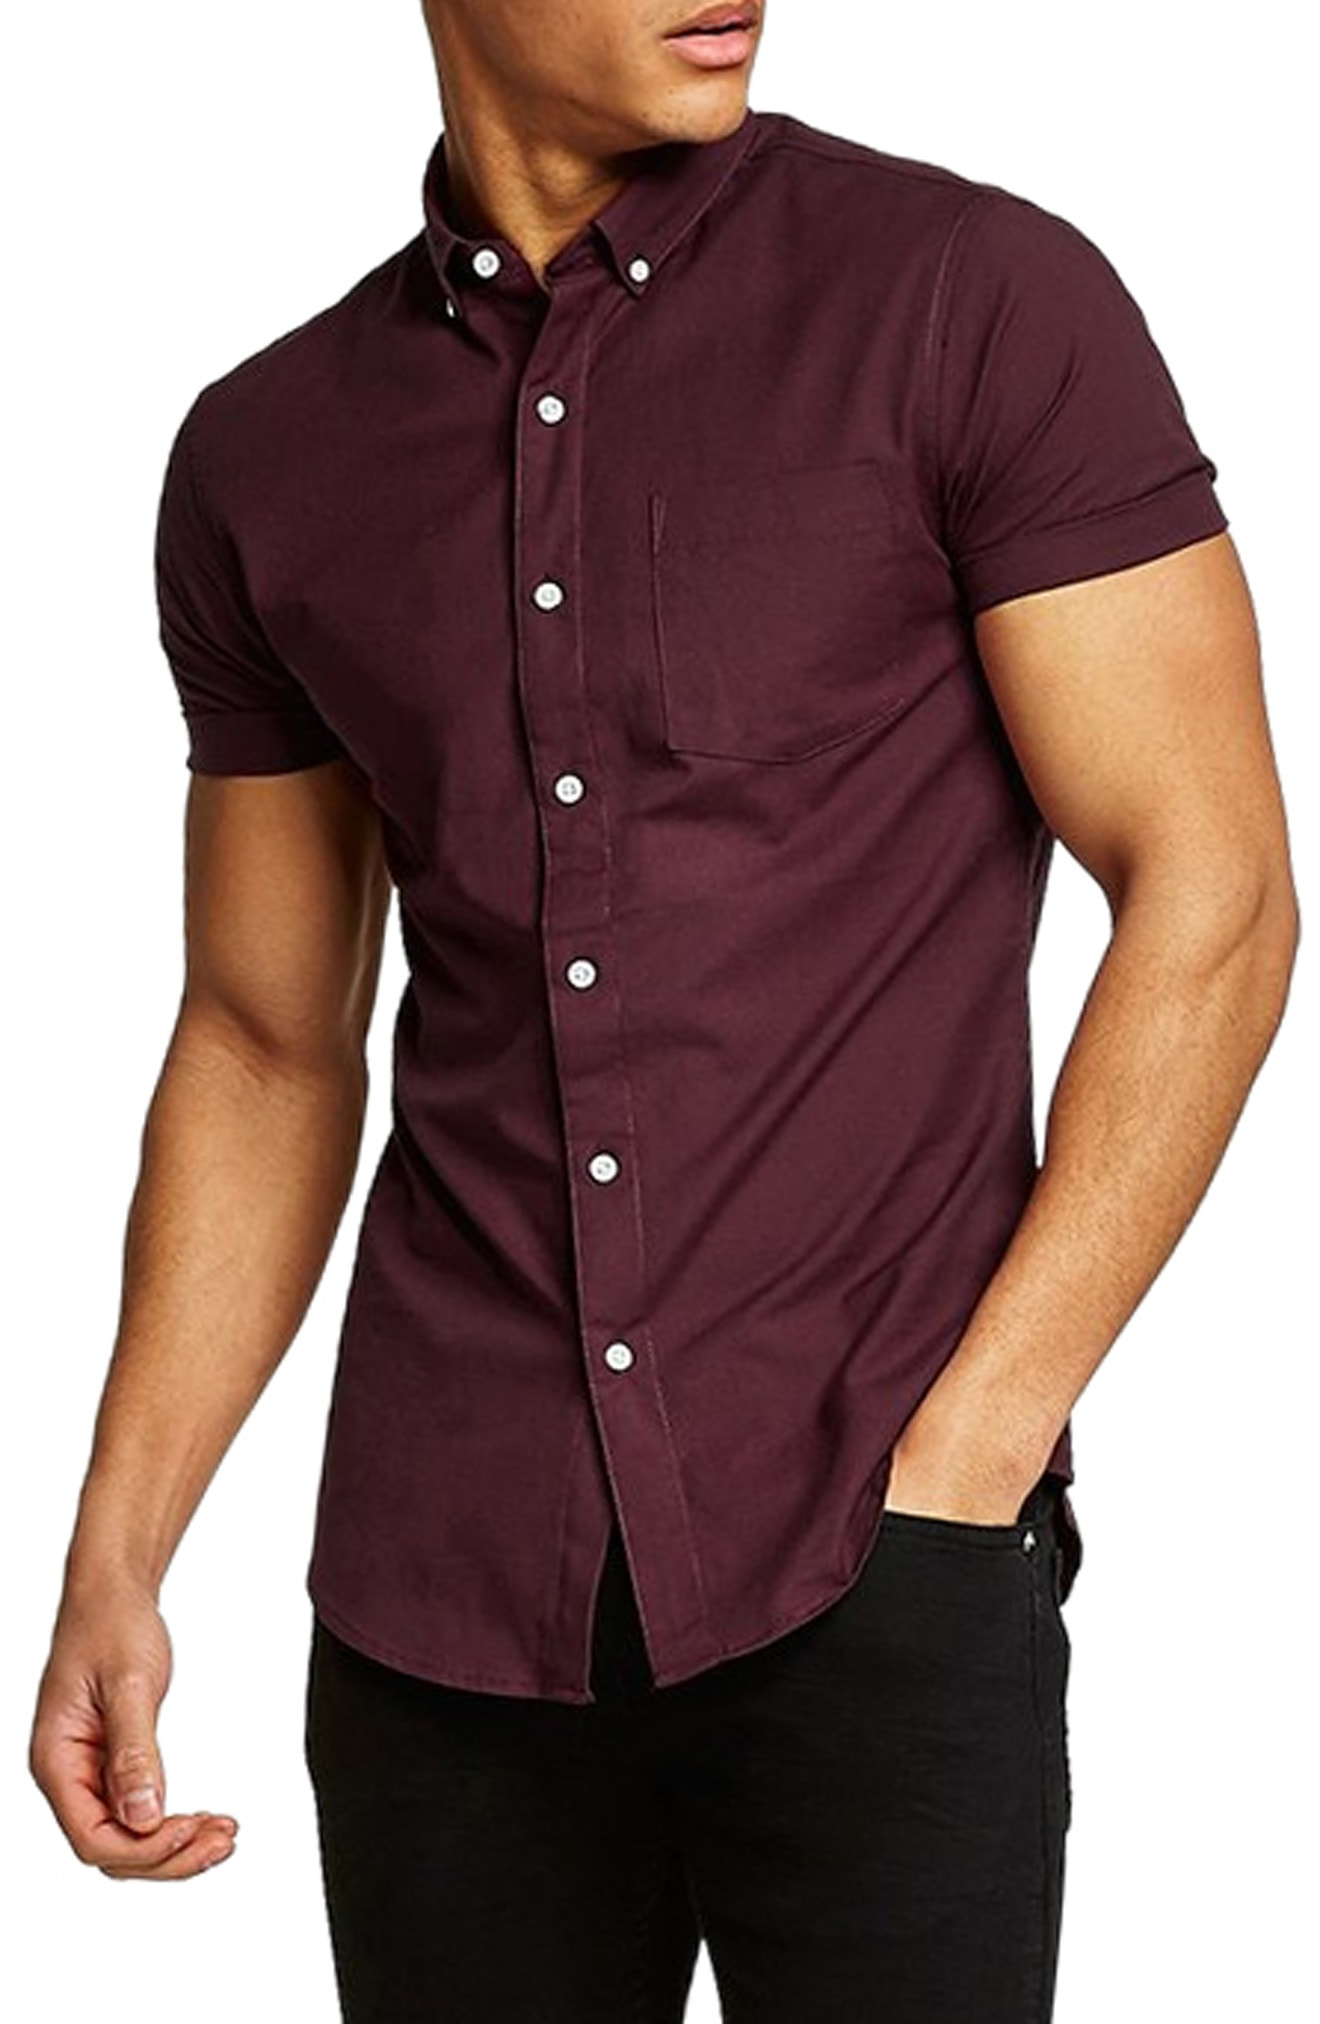 e30b6a2c Men's Topman Muscle Fit Oxford Shirt, Size Large – Burgundy | The  Fashionisto